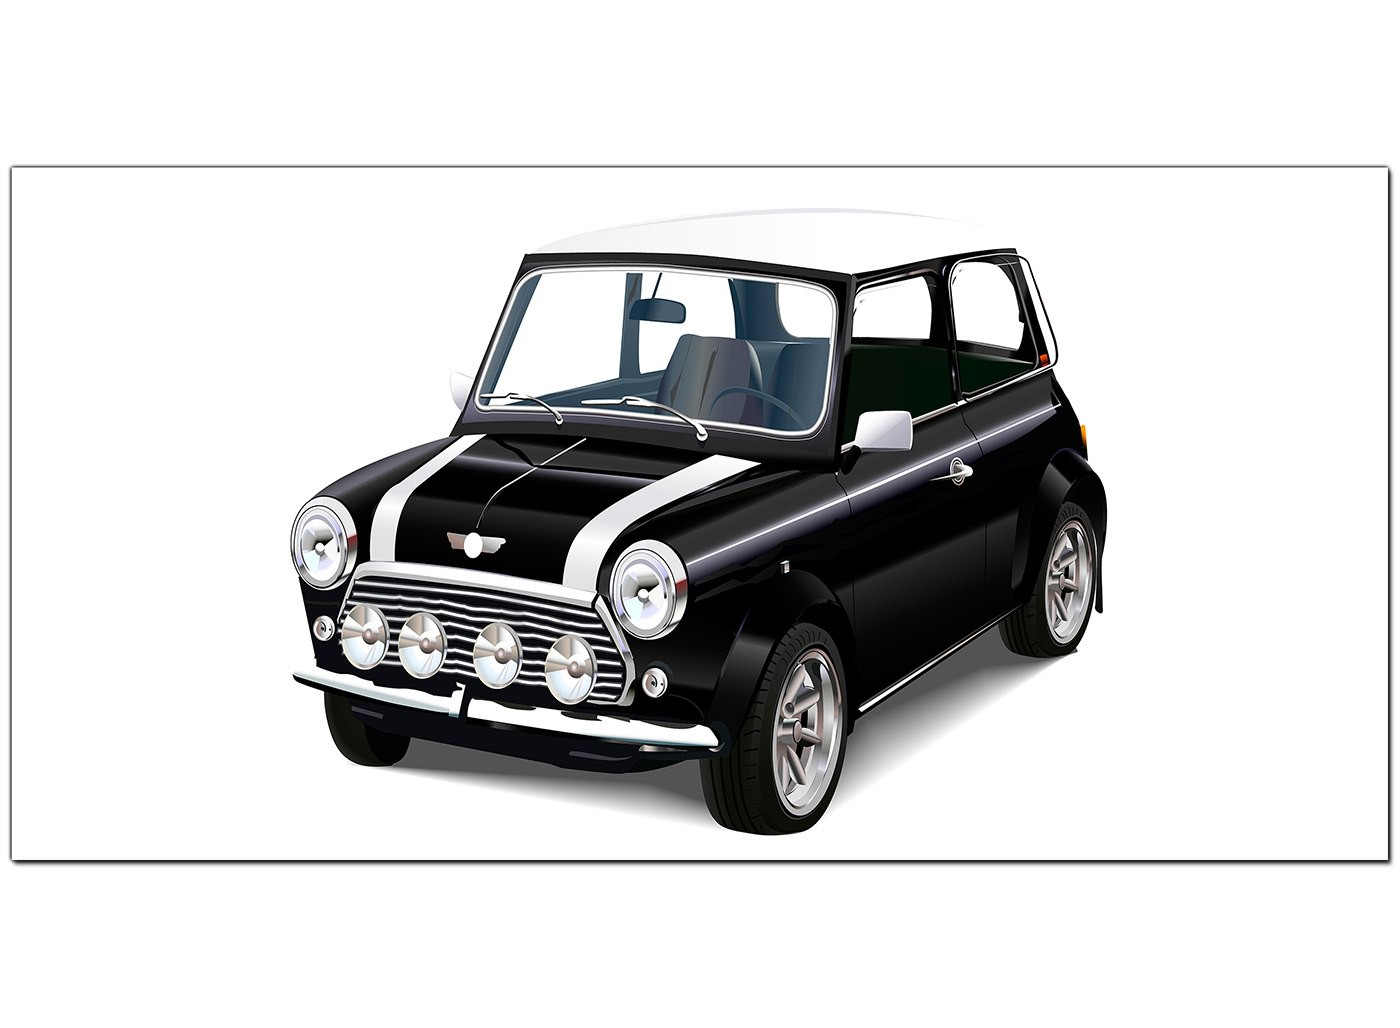 New Mini Cooper >> Cheap Black and White Canvas Pictures of a Mini Cooper Car